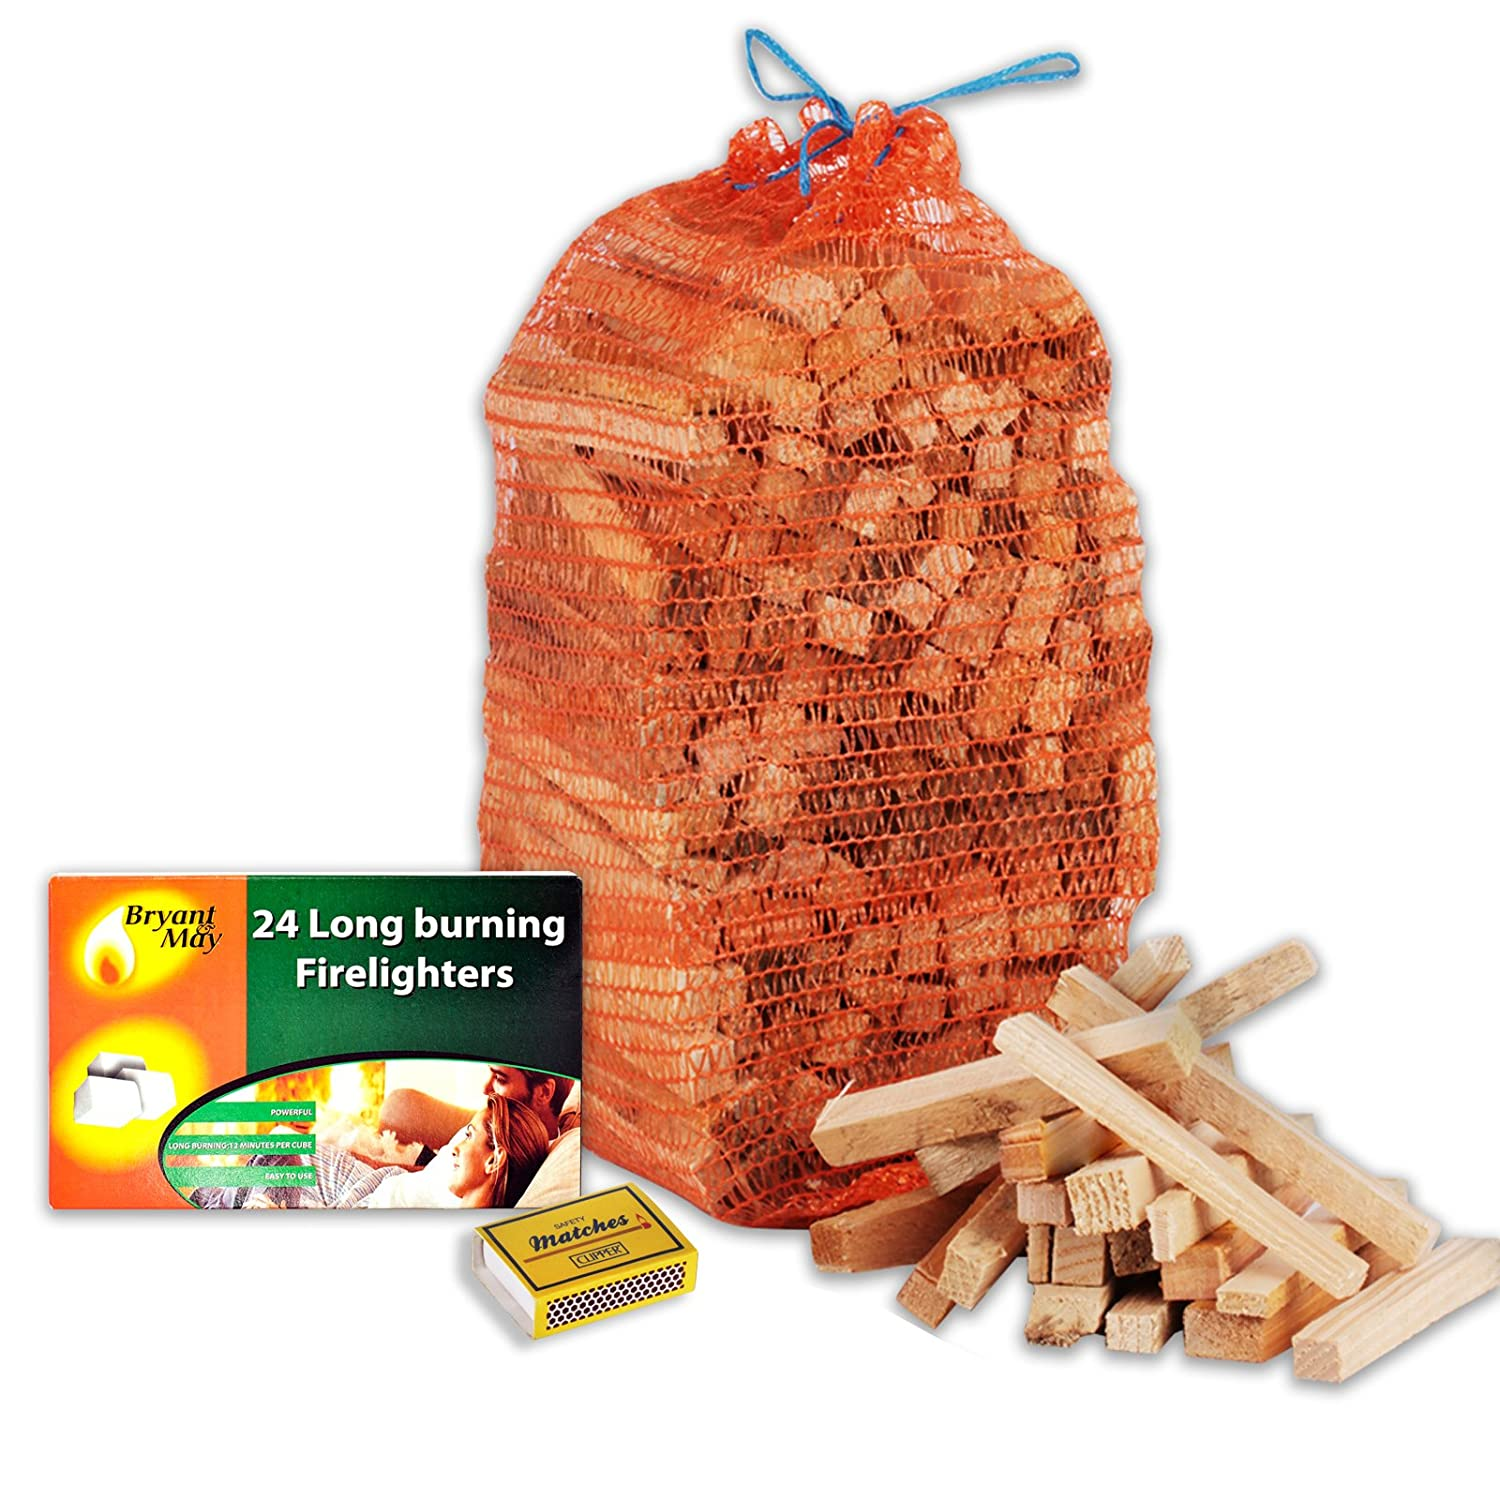 1 X Pack of 24 Bryant & May Long Burning Easy to Use Firelighters + 3kg Kindling & Tigerbox Safety Matches Bryant&May